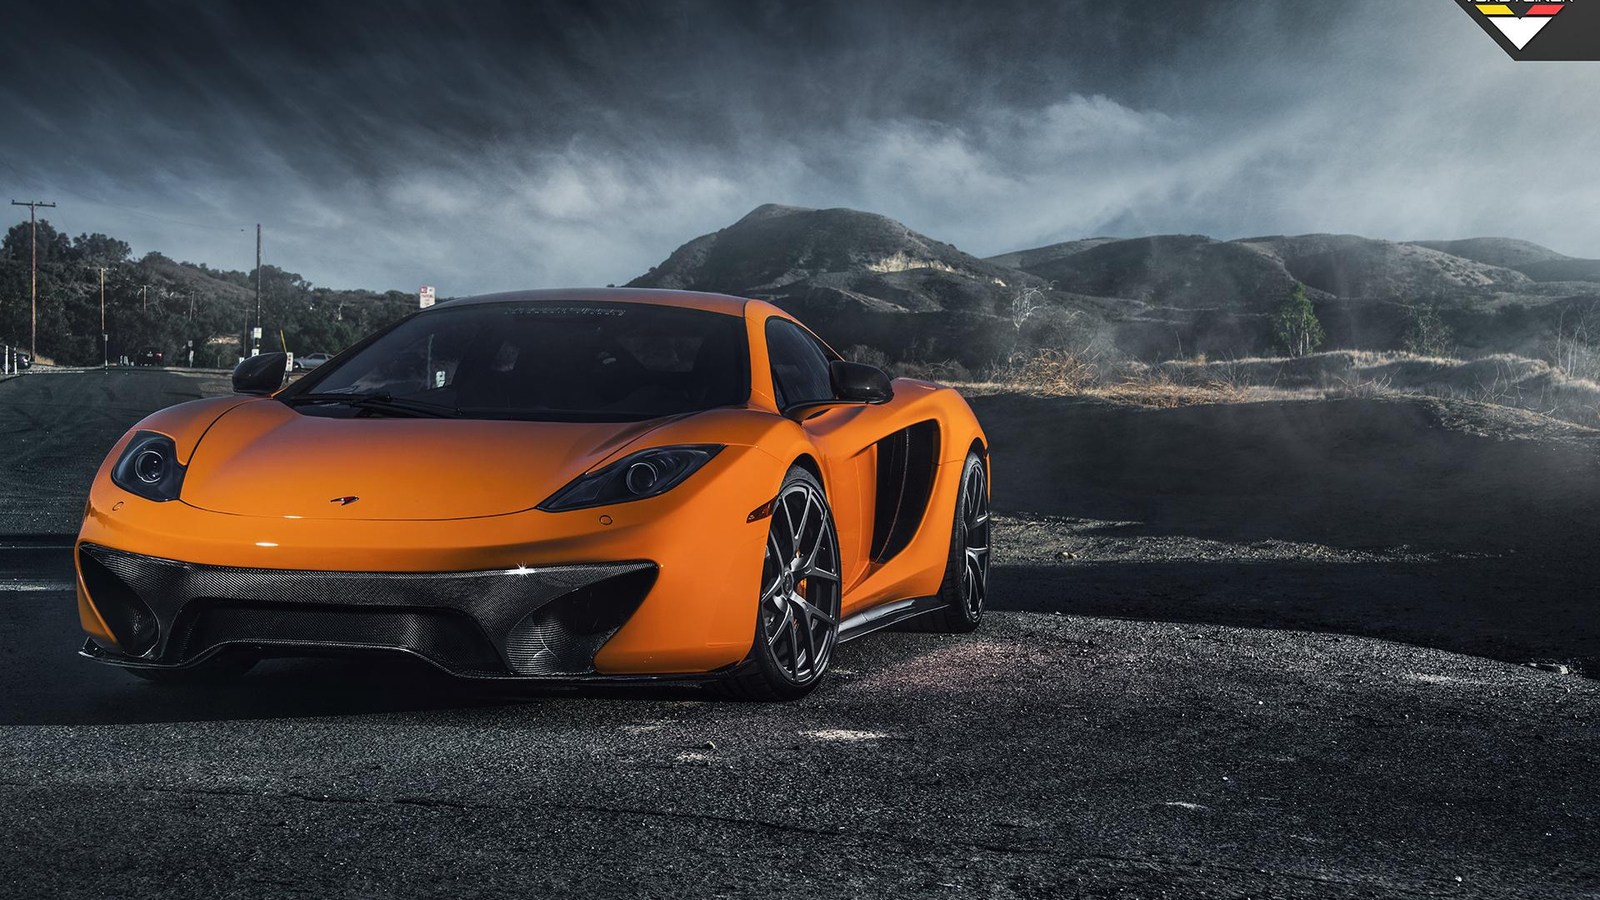 McLaren supercar wallpaper download 49789 - Automotive Wallpapers ...